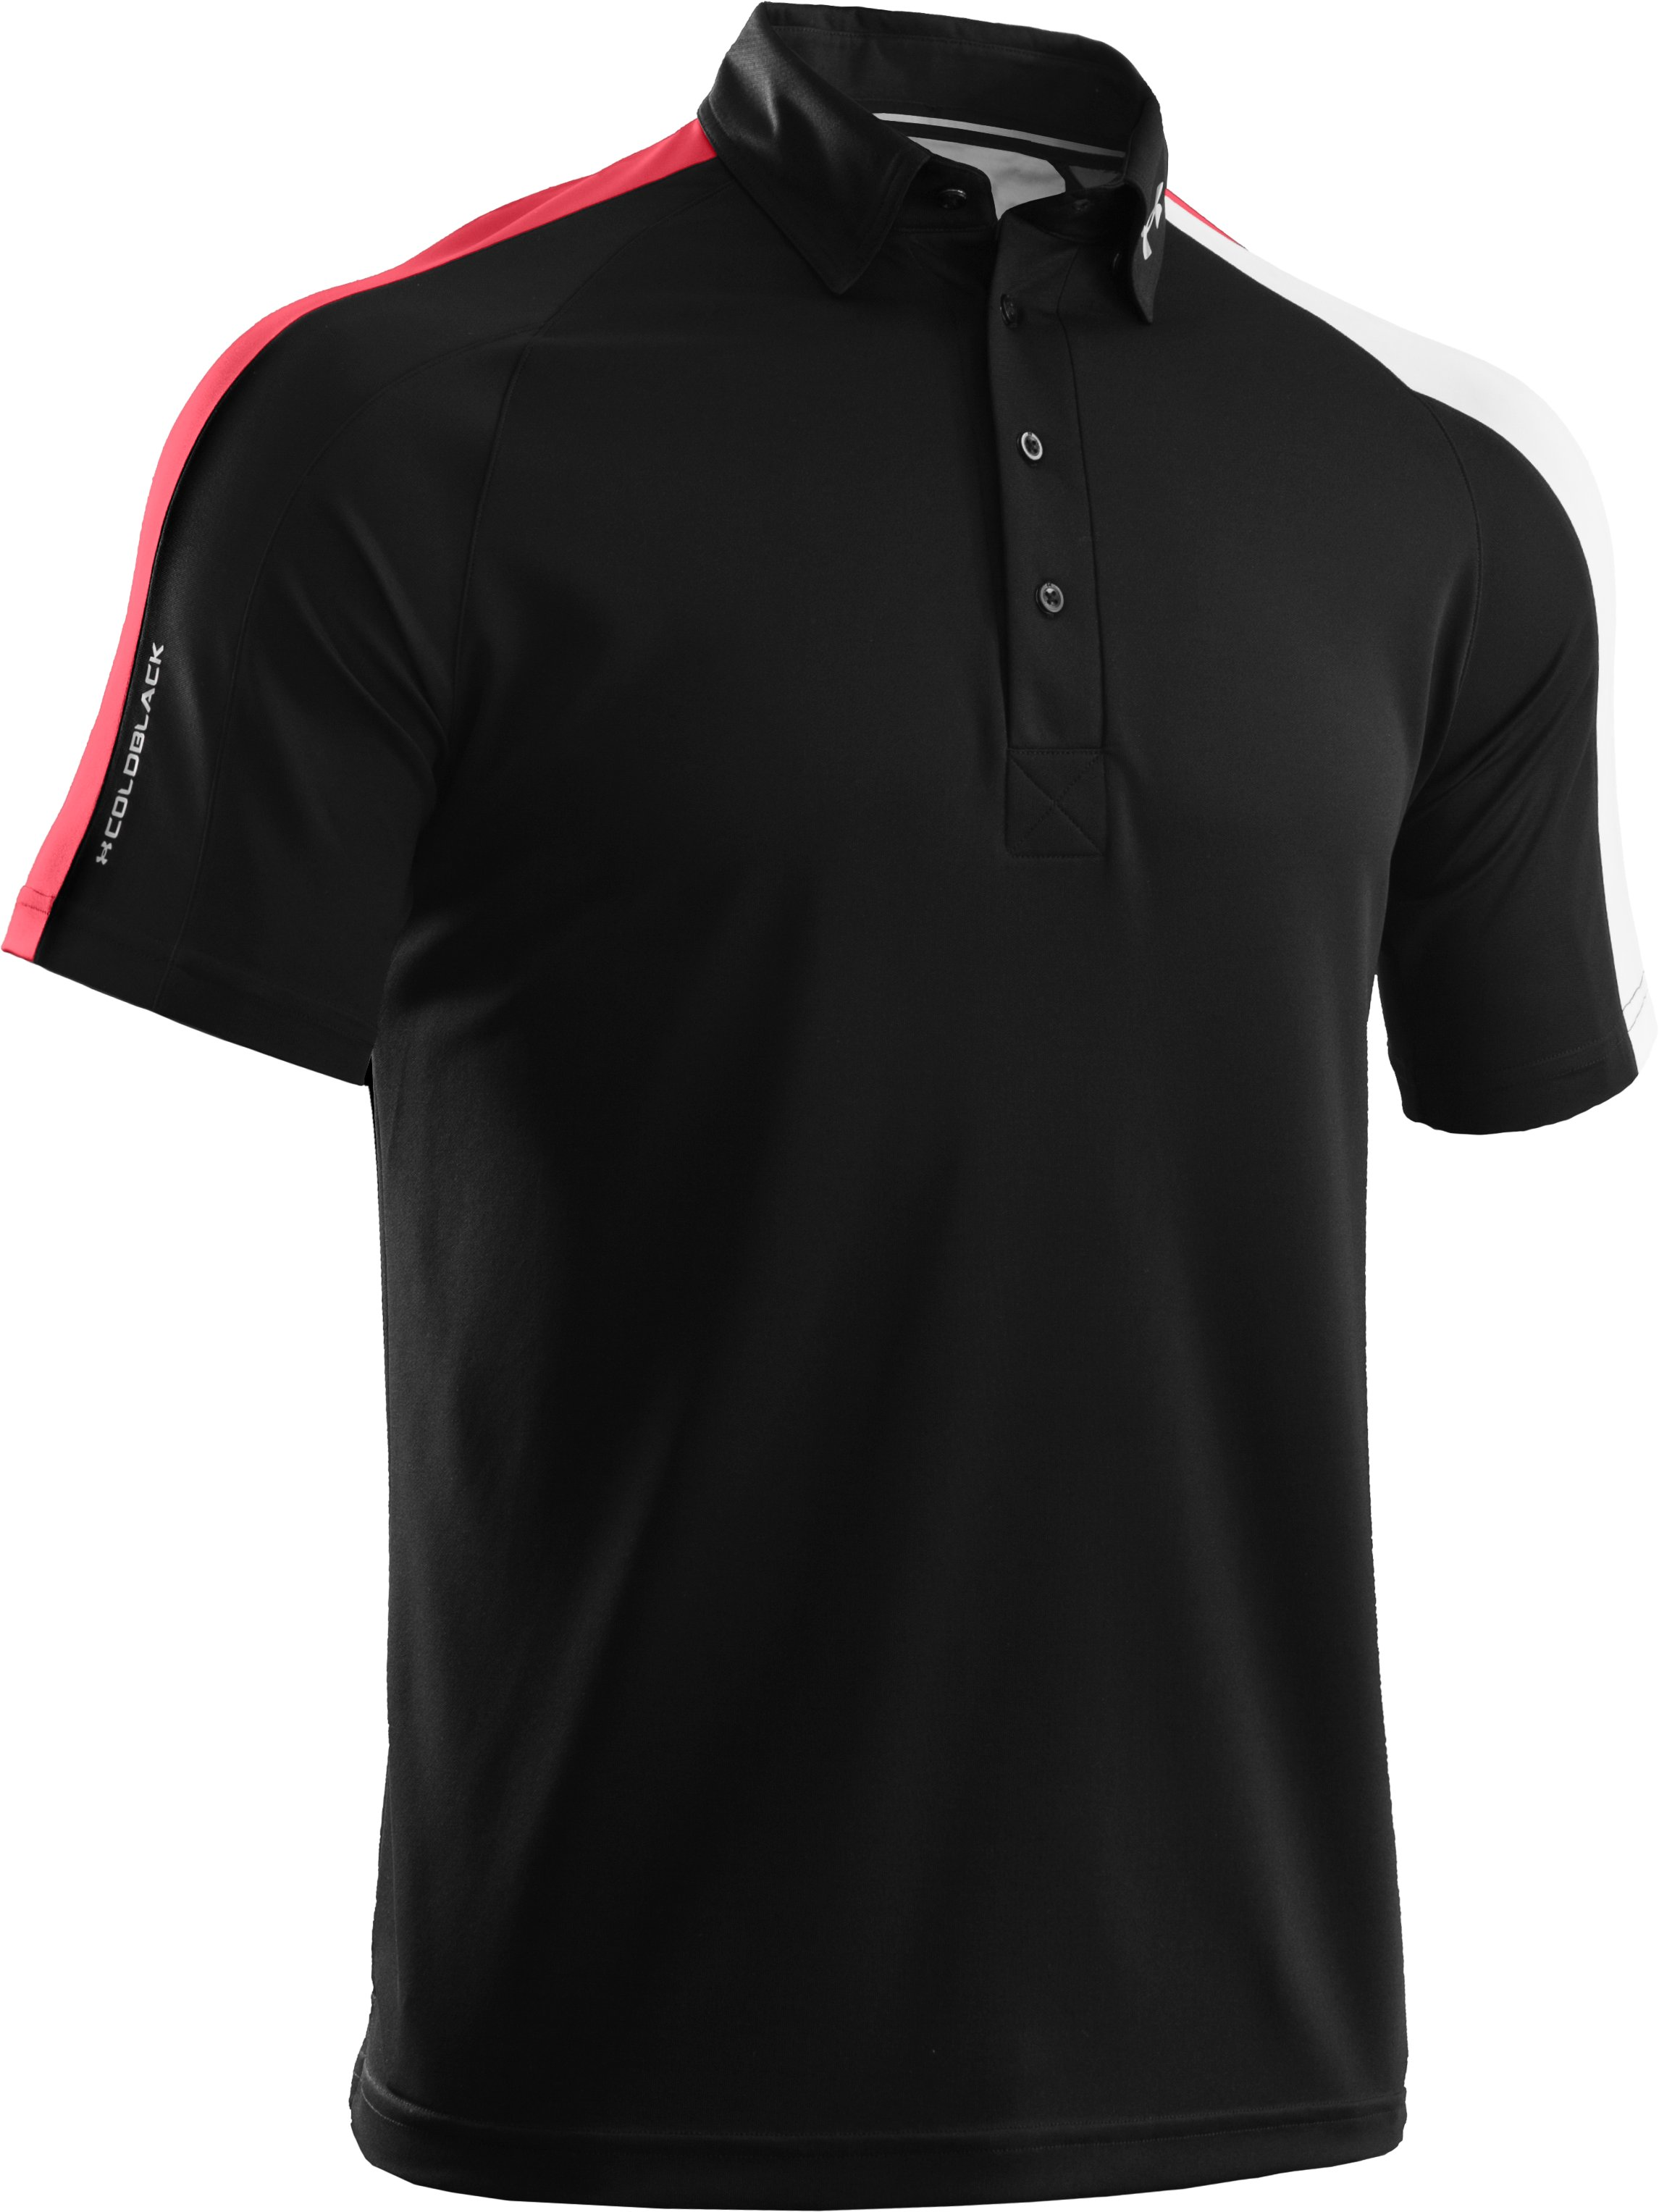 Men's coldblack® Colorblock Polo, Black